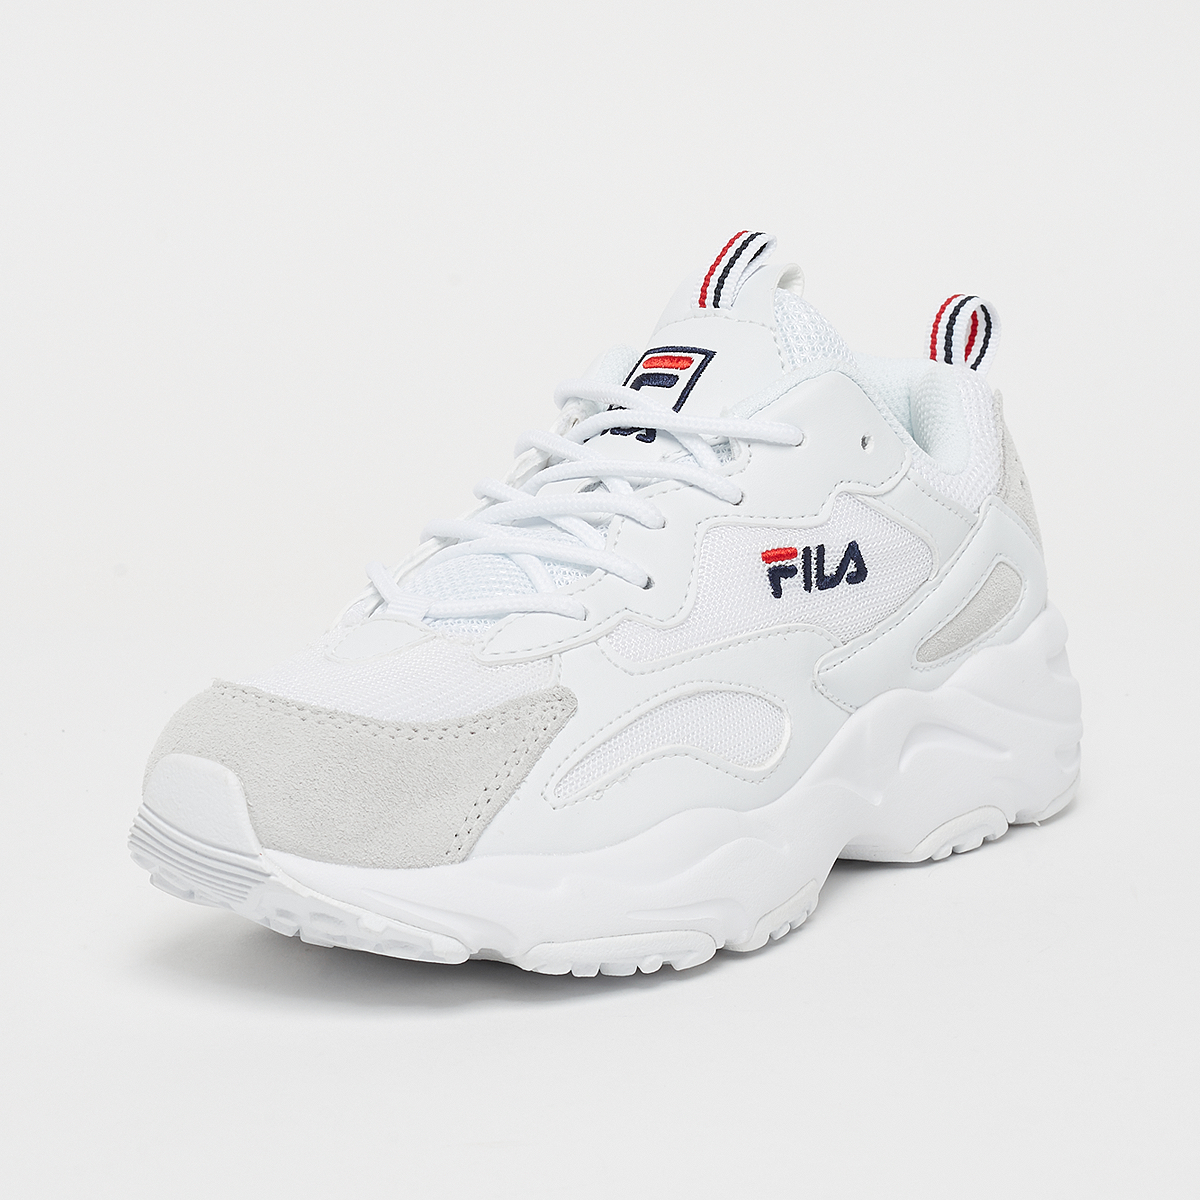 FILA Ray Tracer in weiss 1010686.91X WHITEWHITE | everysize